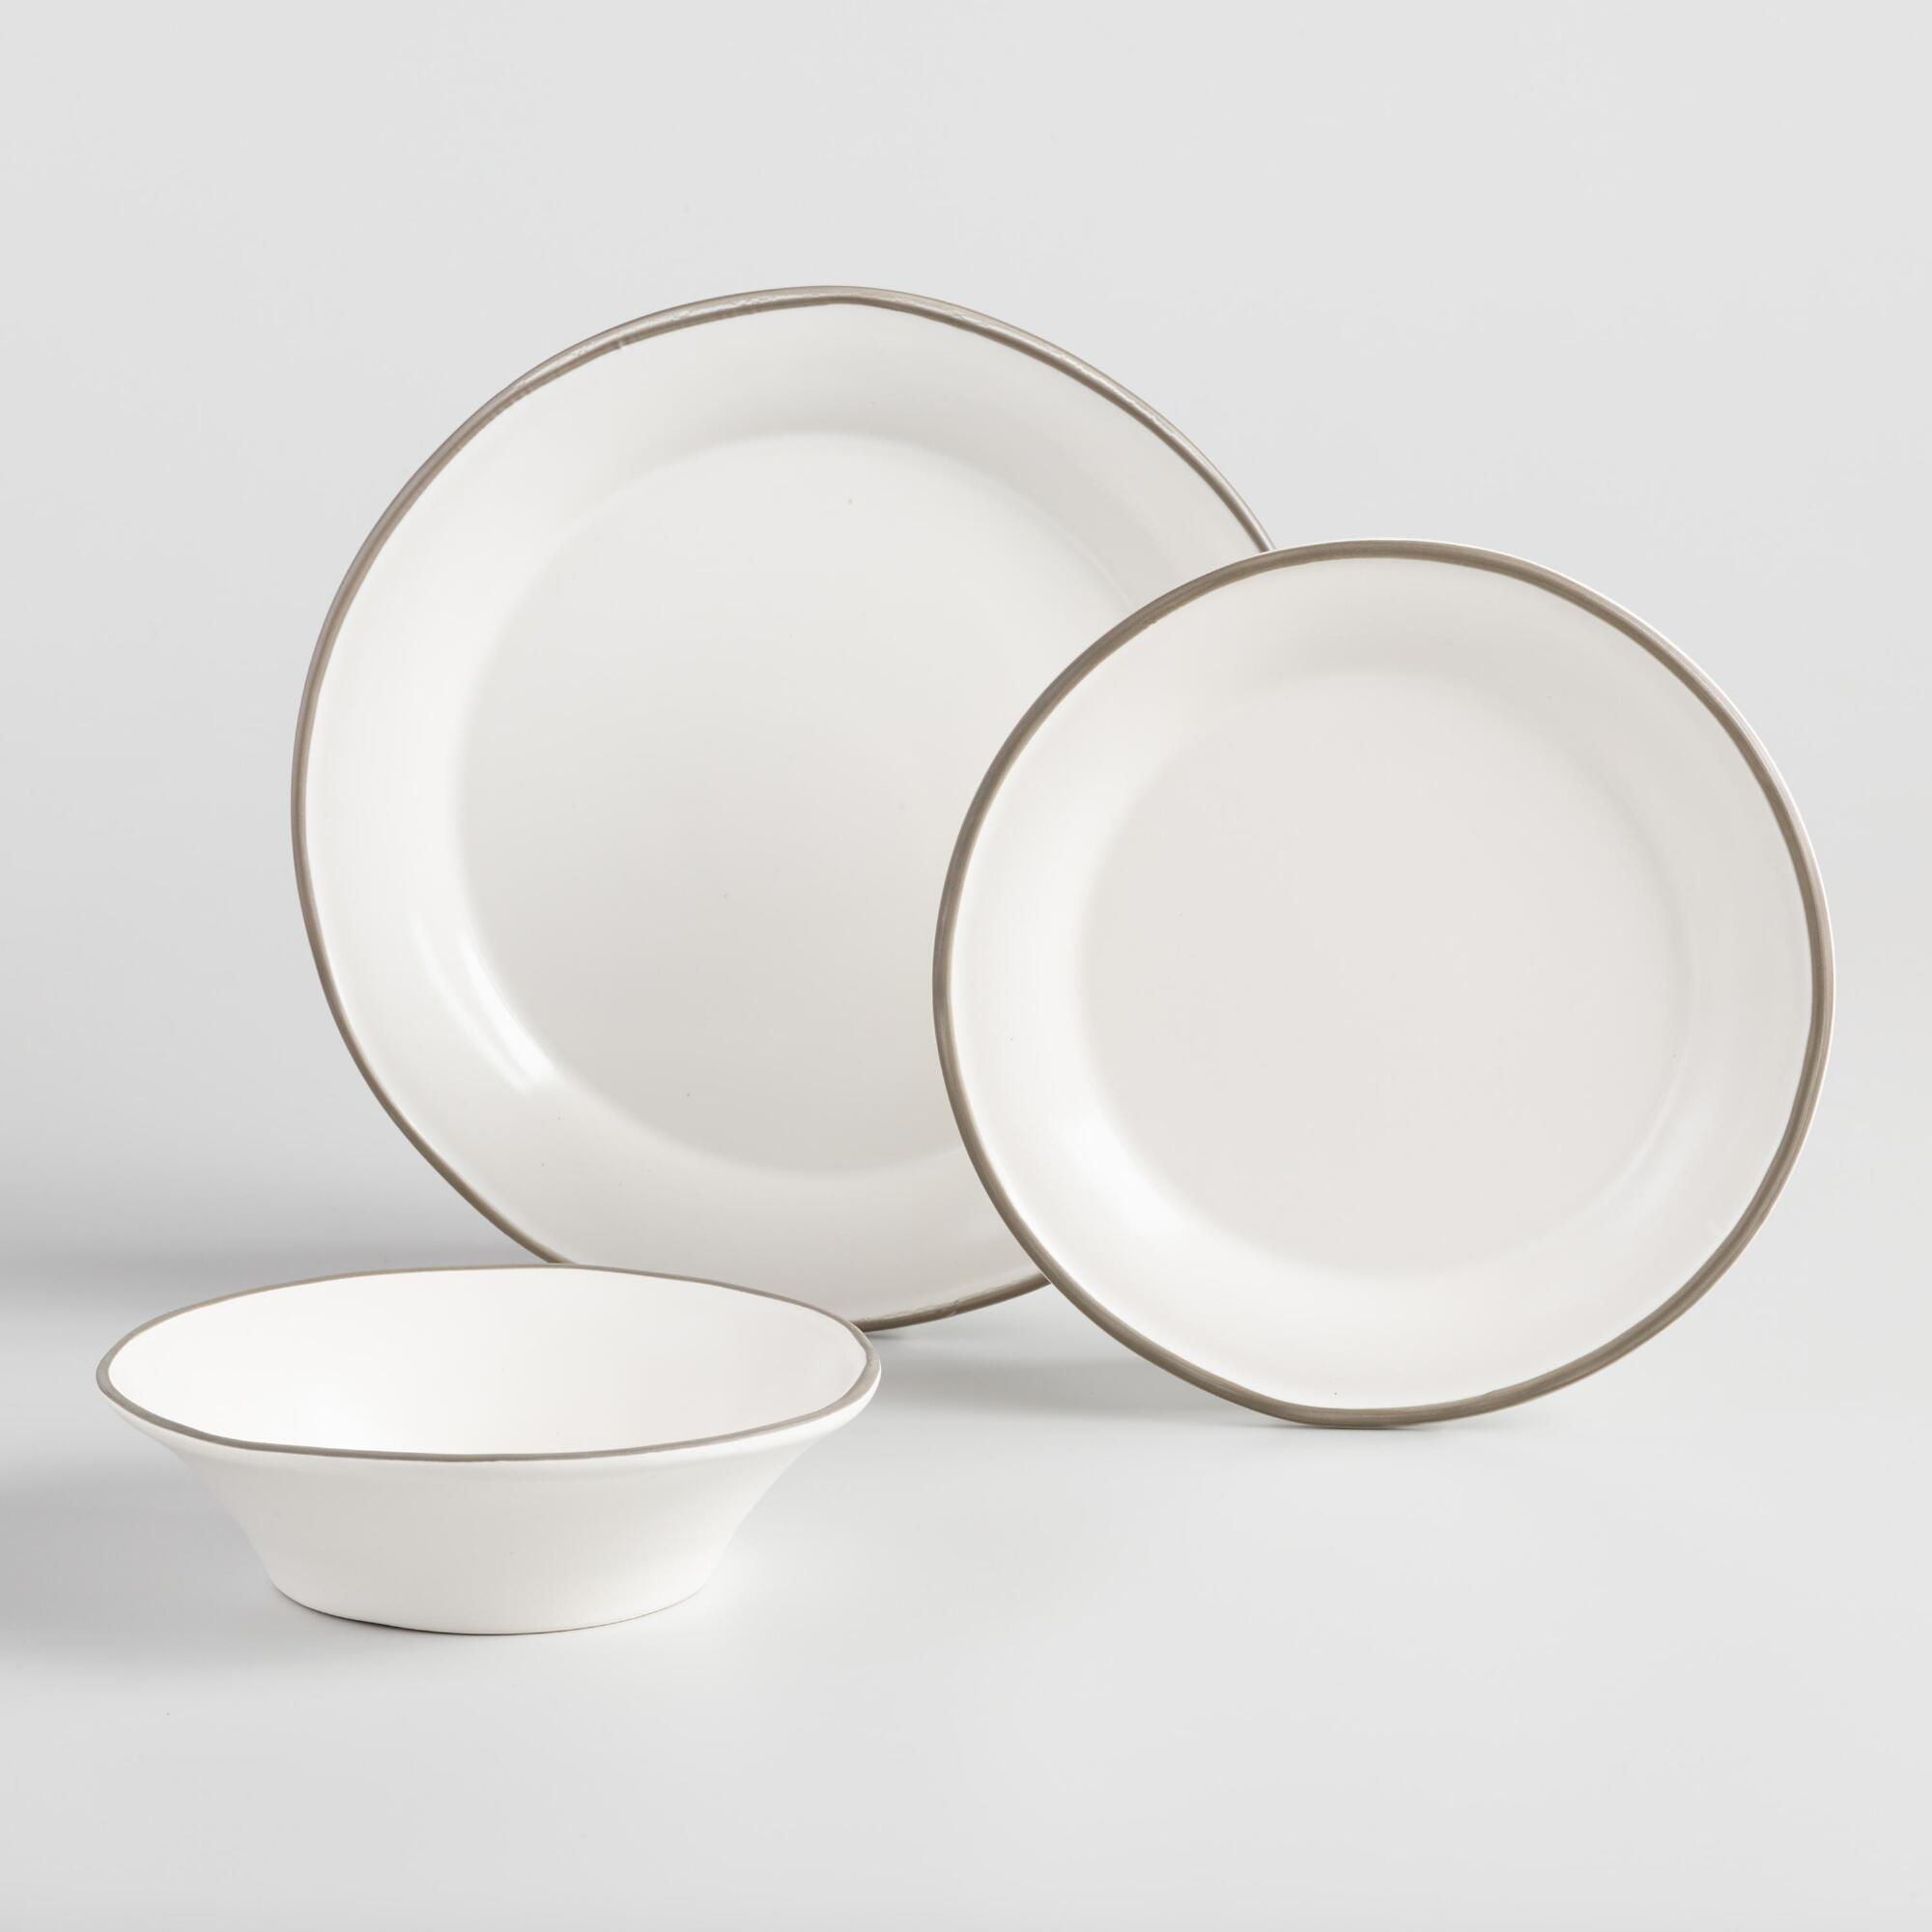 Rustic White And Gray Fatima Dinnerware Collection by World Market